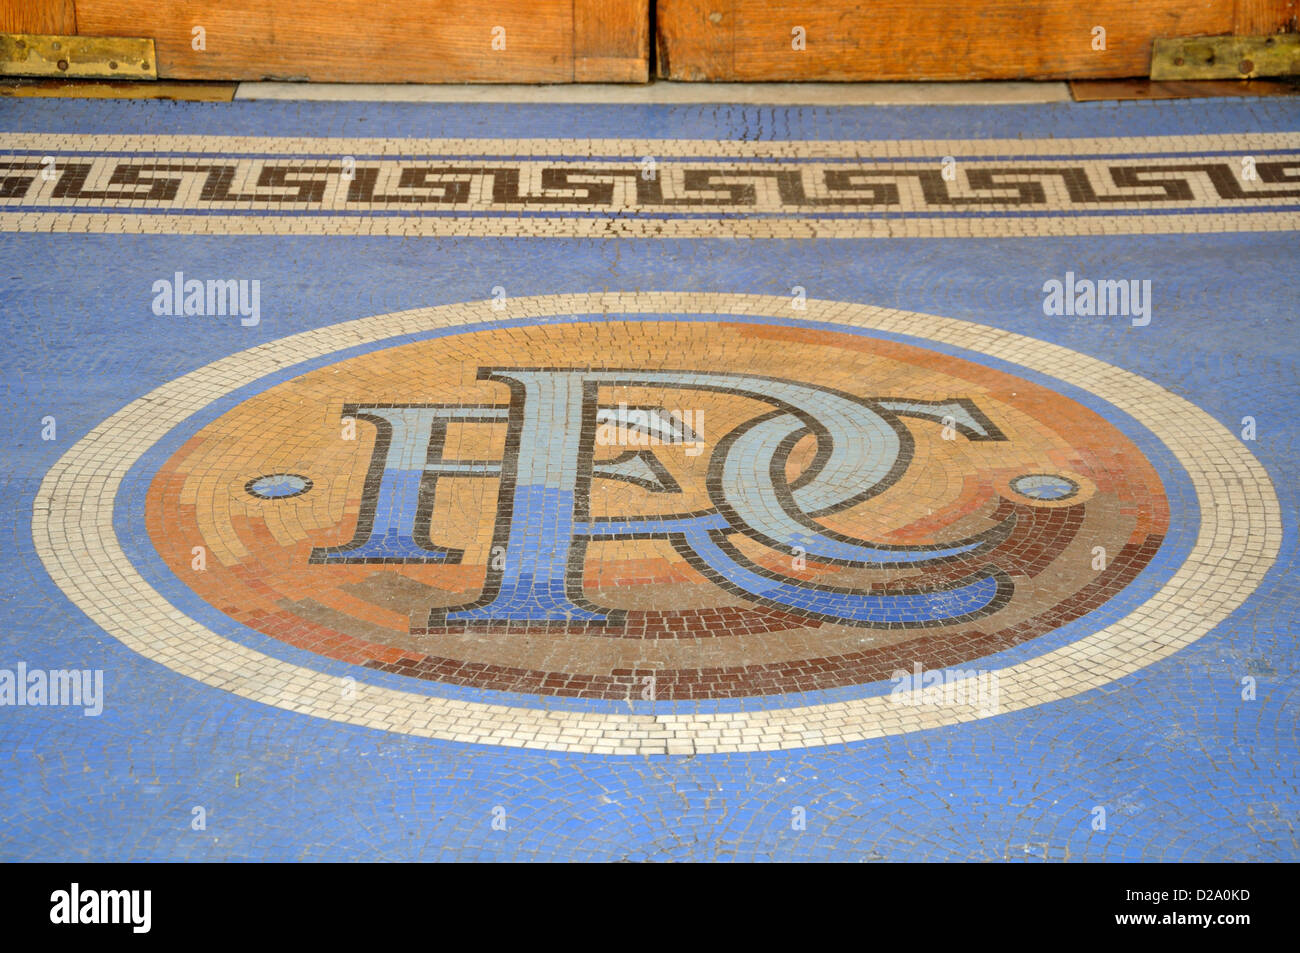 Mosaic tiles form the RFC letters of Rangers Football Club at Ibrox stadium in Glasgow, Scotland - Stock Image